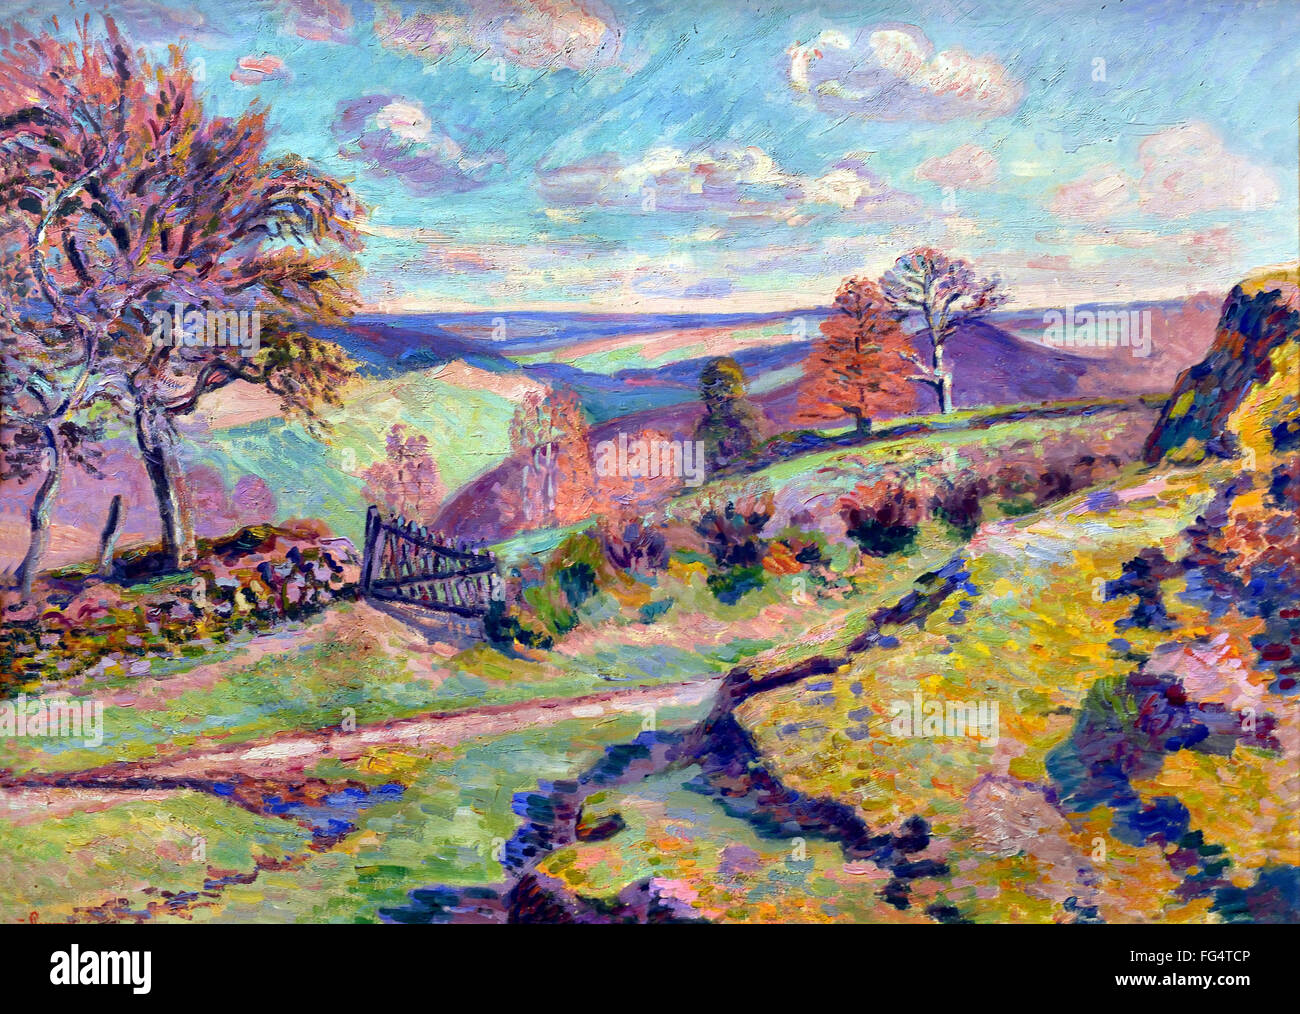 armand guillaumin 1841 1927 the fishery crozant france french stock image - French Ngel Muster